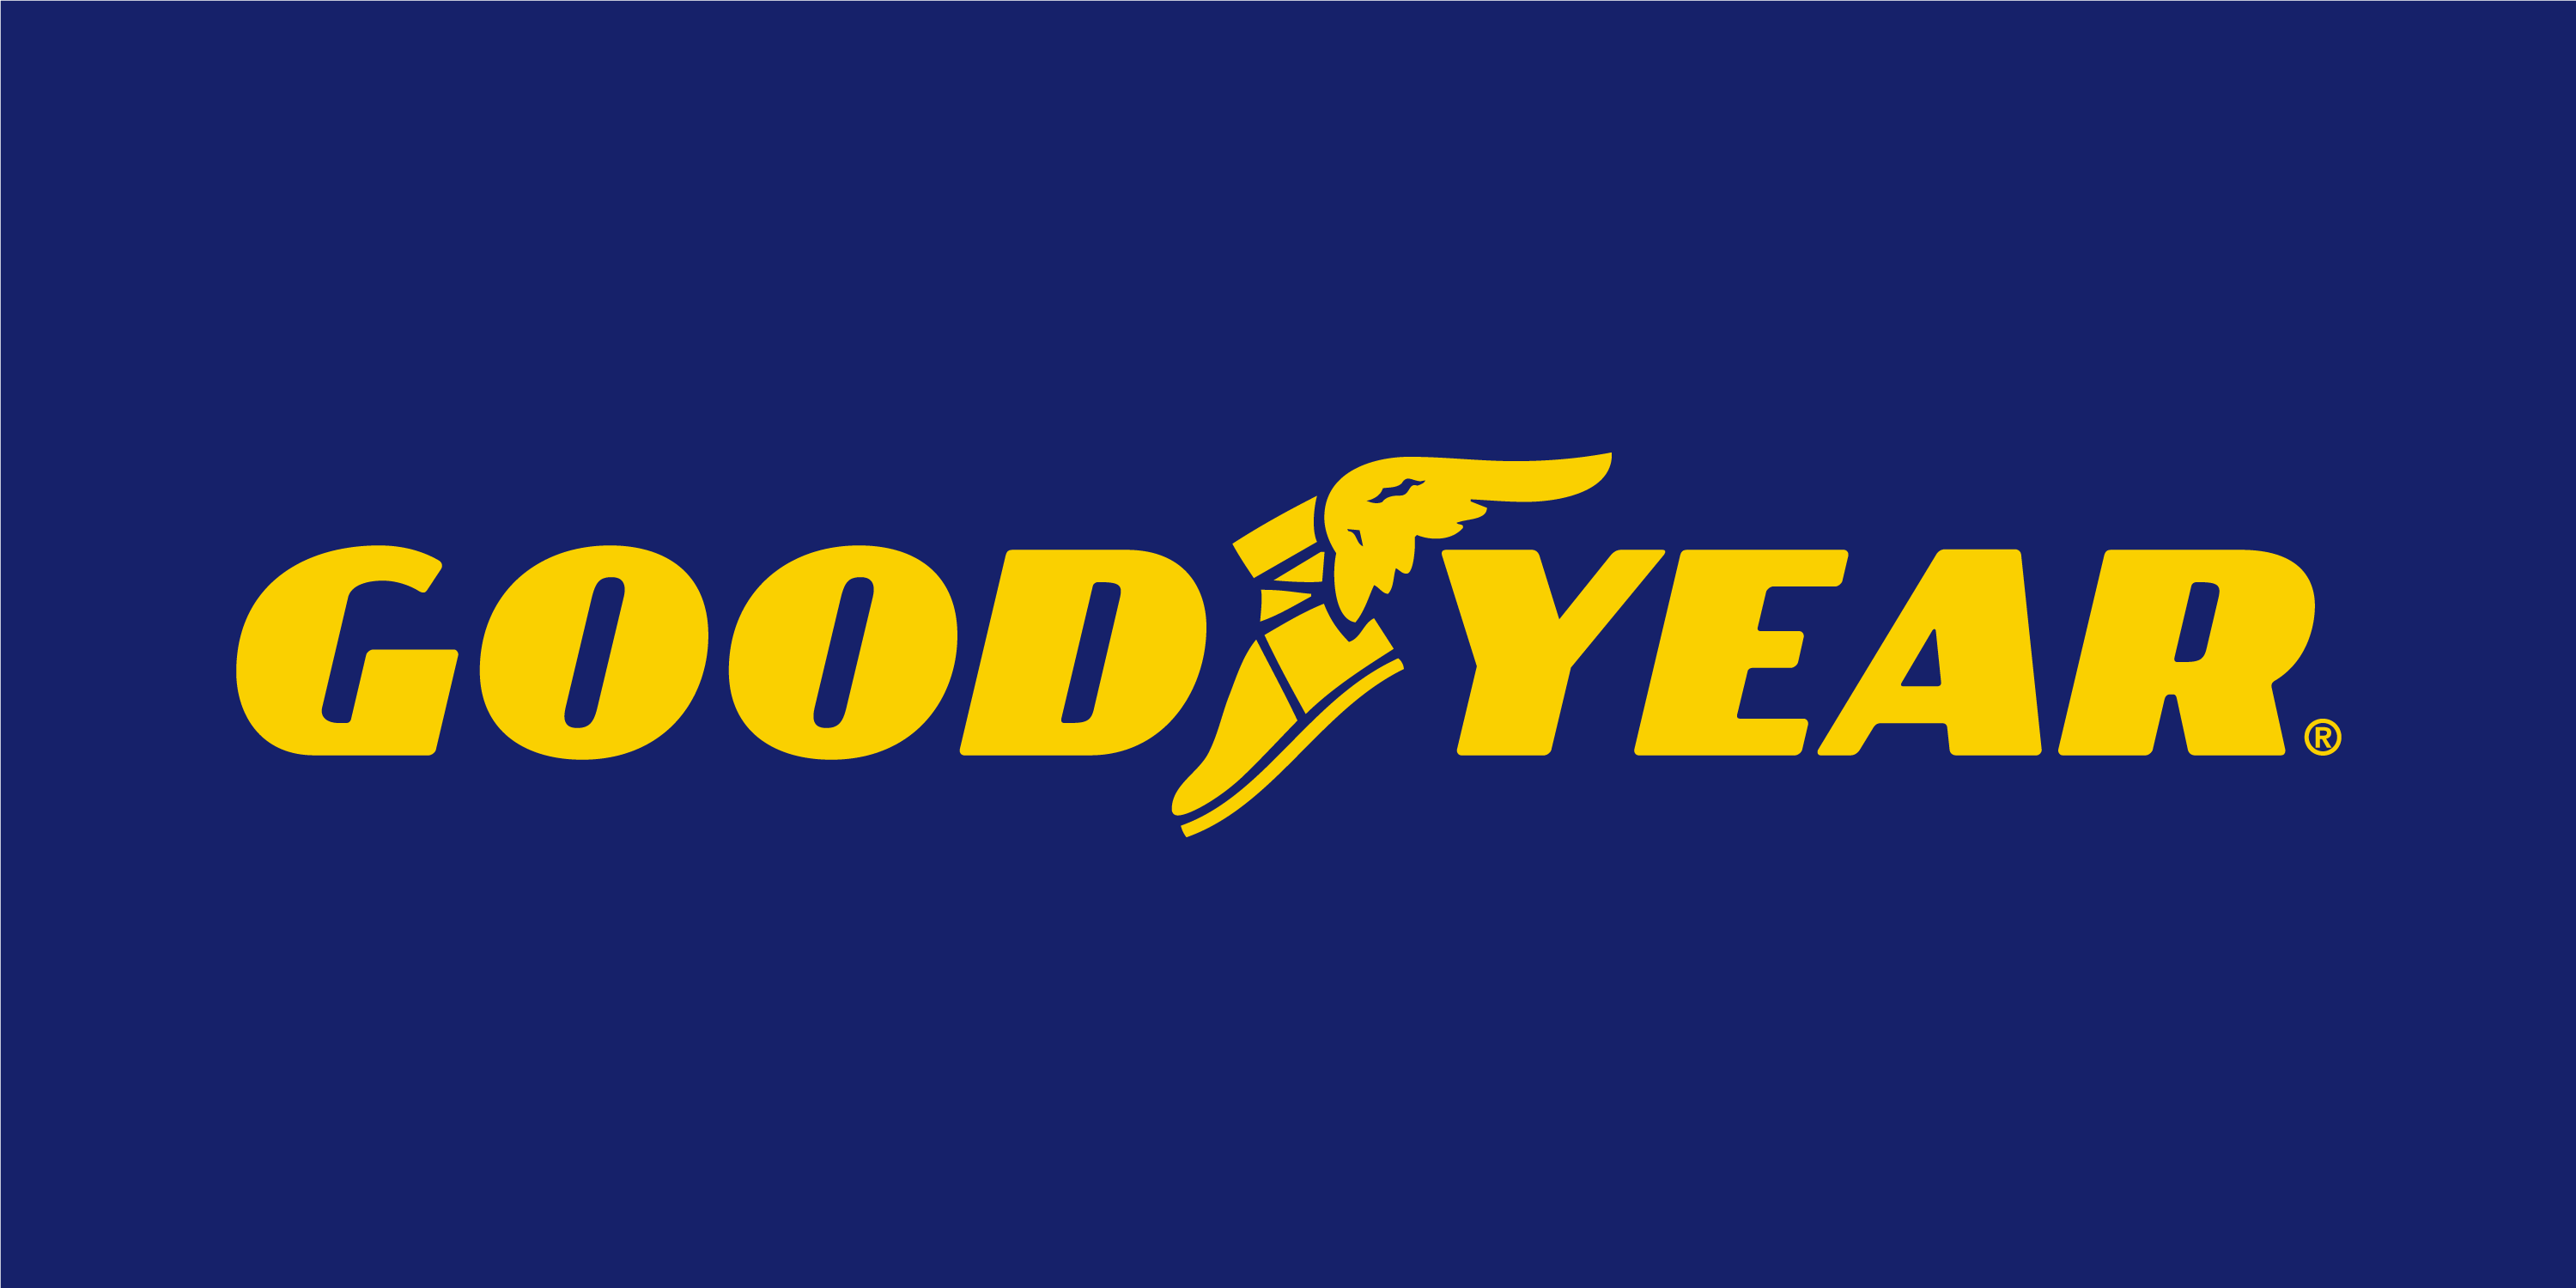 ind-man-goodyear-tire-and-rubber-co